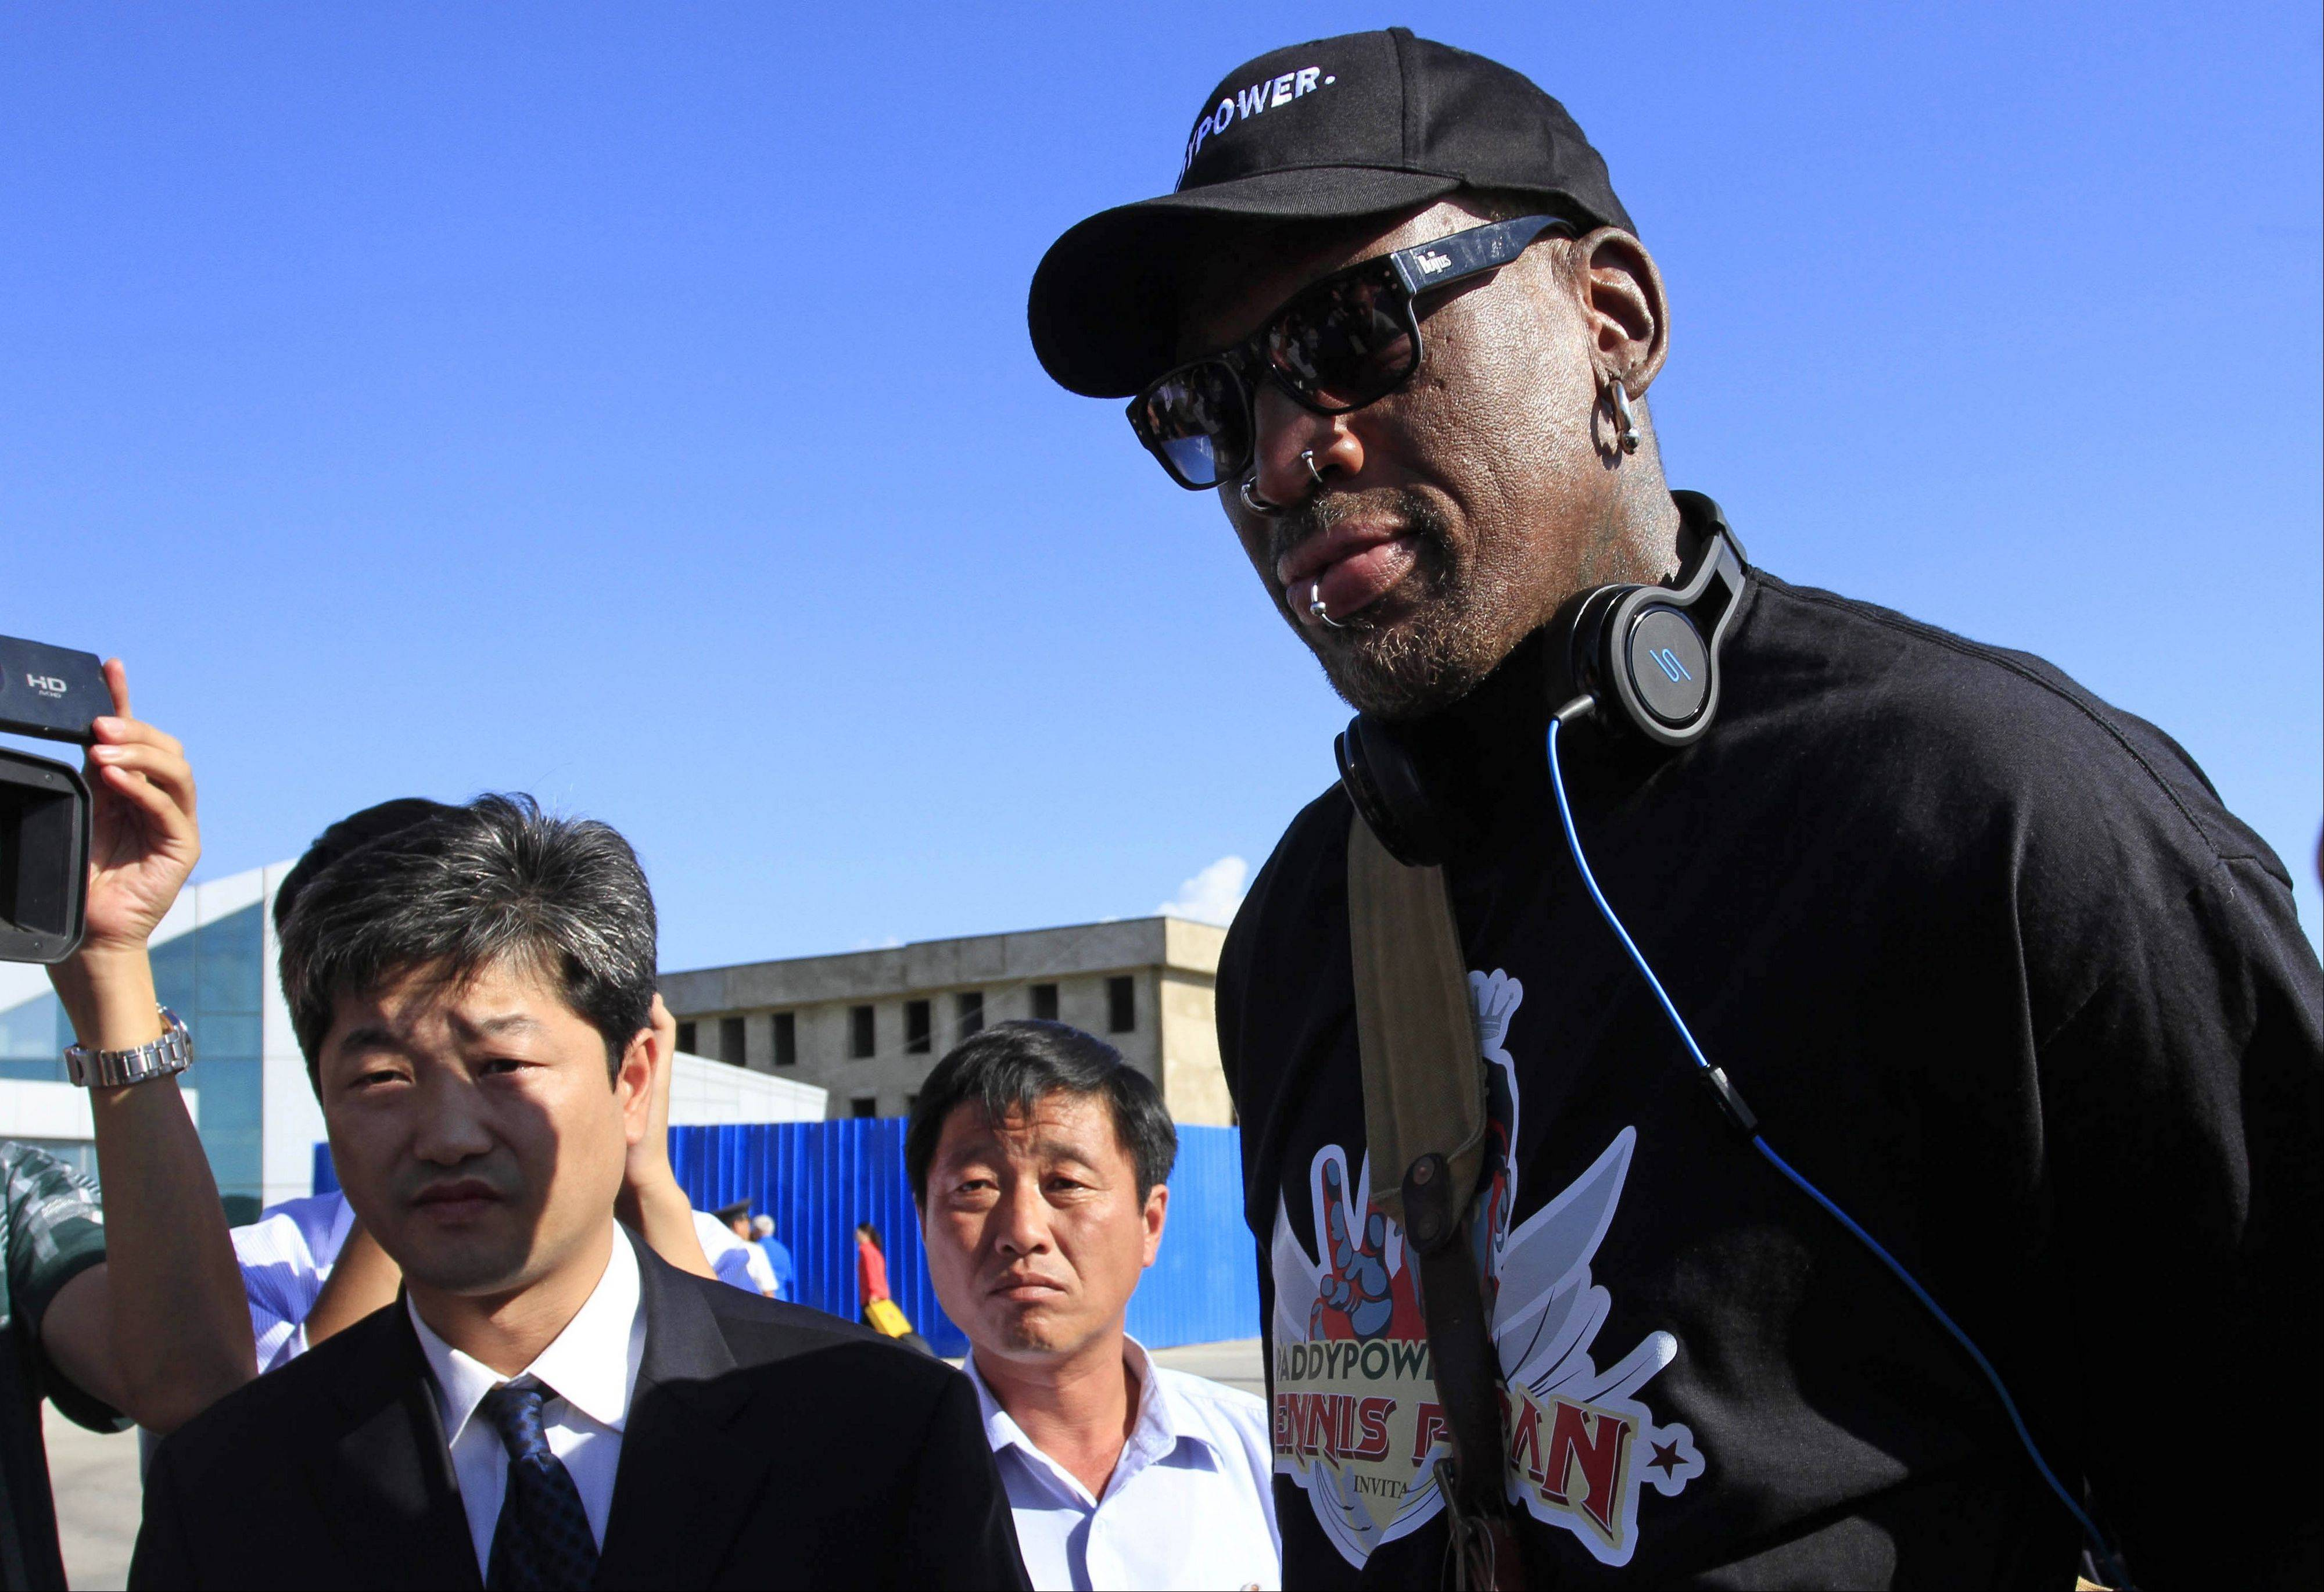 Former NBA star Dennis Rodman arrives at Pyongyang airport, North Korea, Tuesday. The former Chicago Bulls star said he plans to hang out with authoritarian leader Kim Jong Un -- but not be a diplomat.